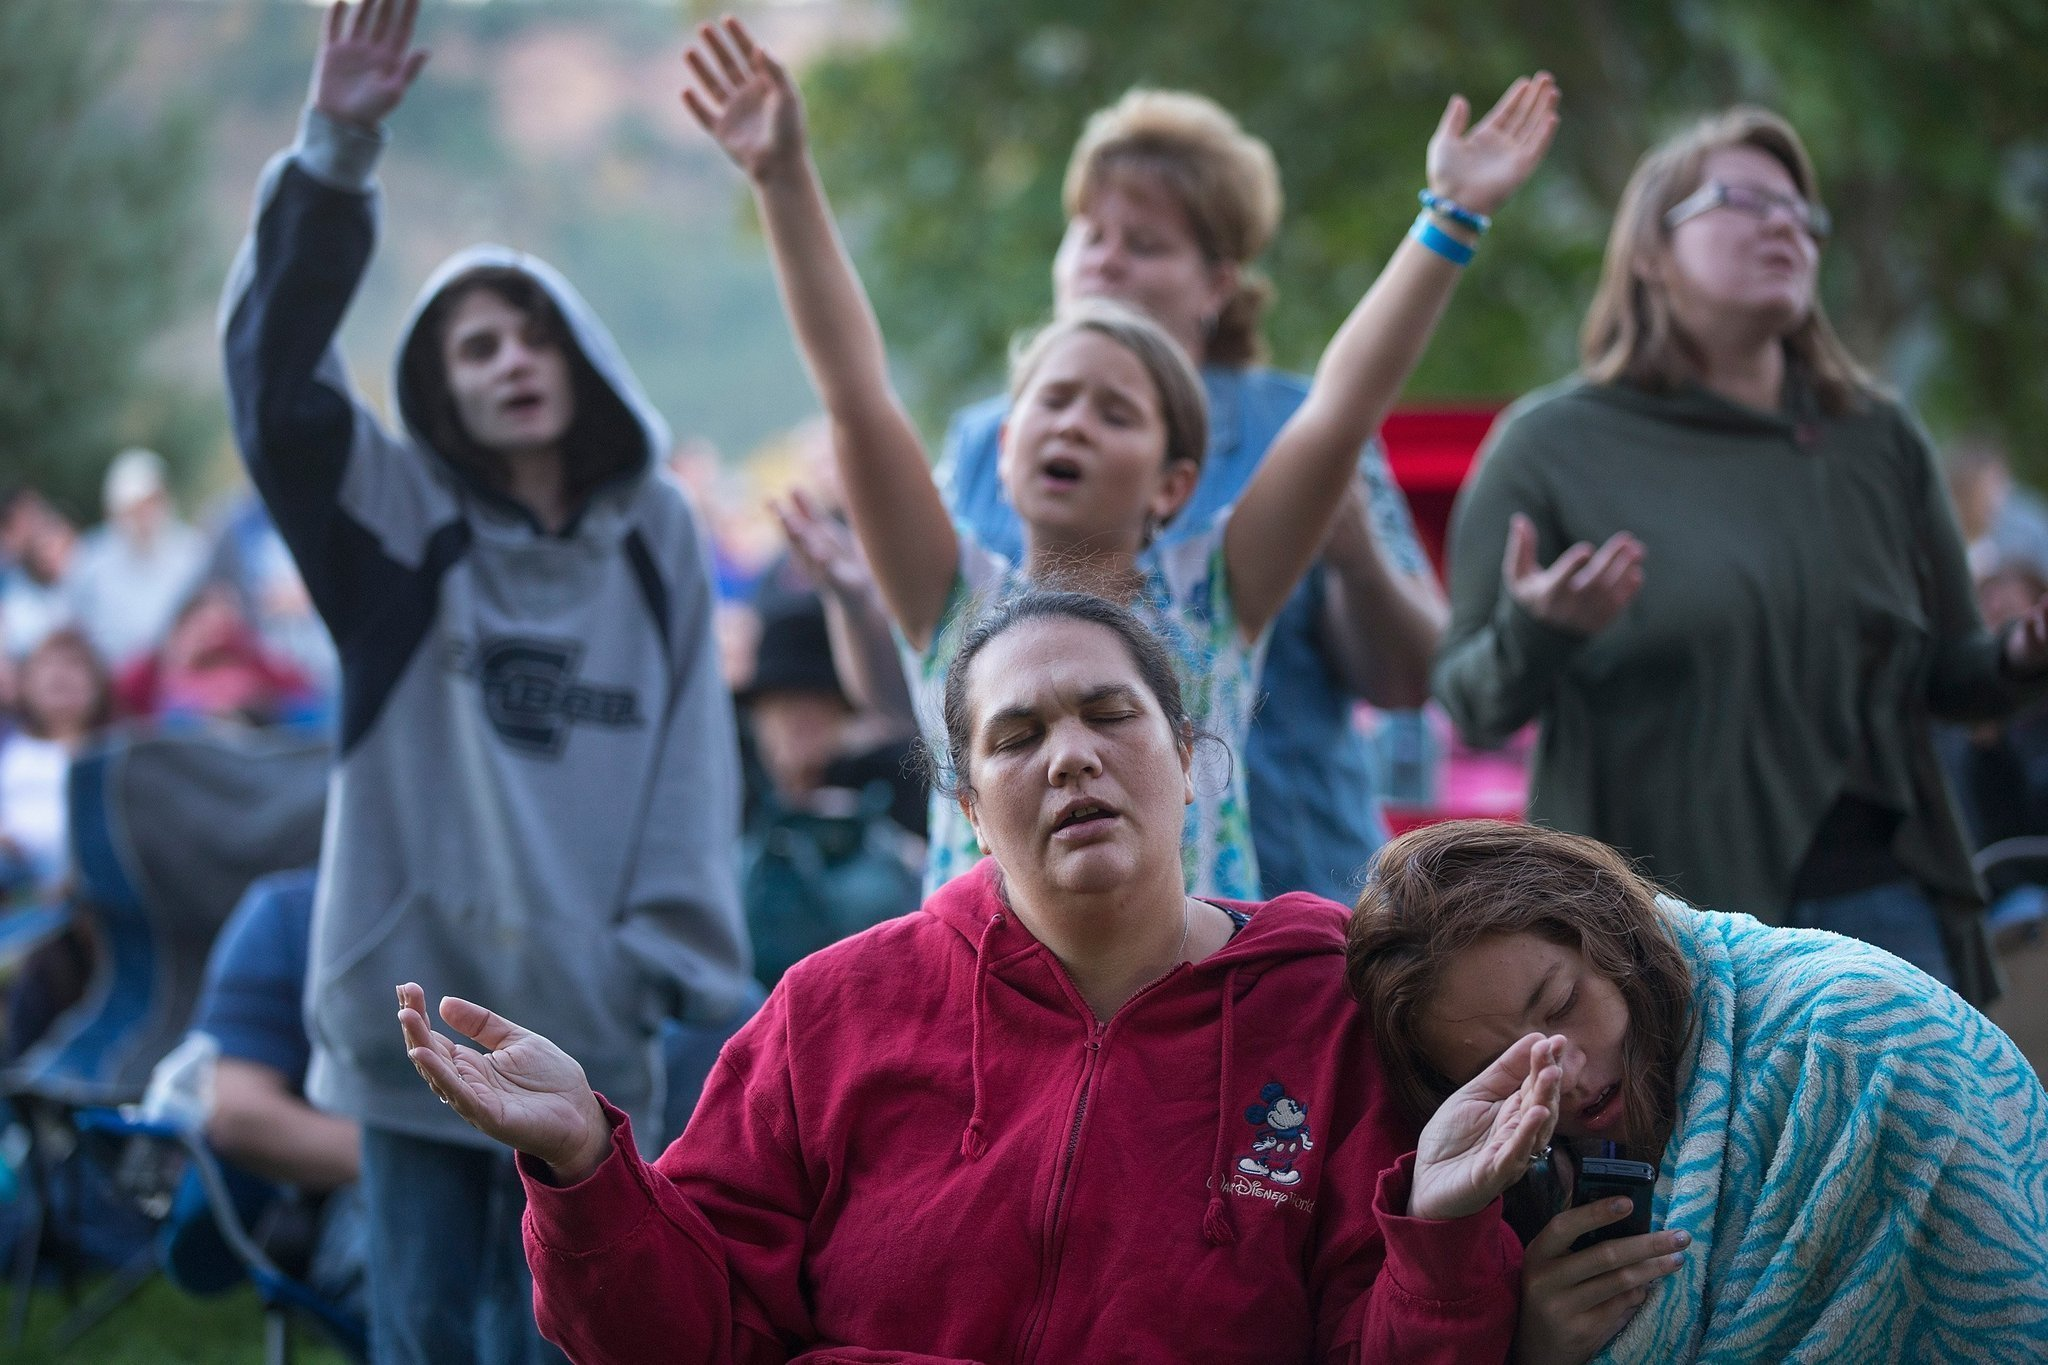 Gunman kills at least 9 at Oregon campus before dying in shootout